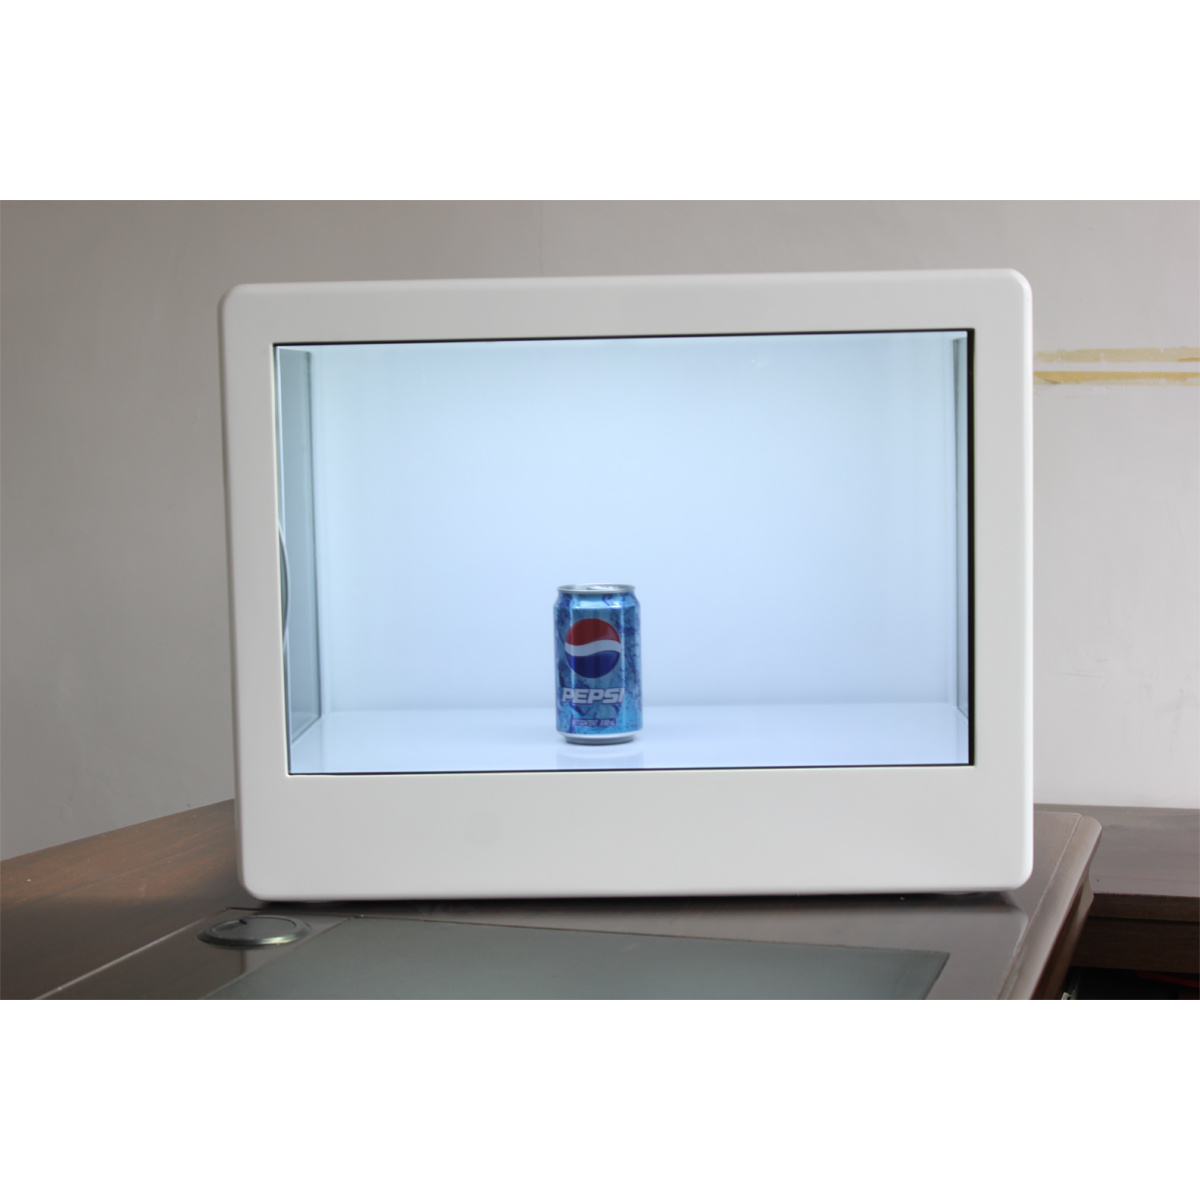 42 Inch LCD Transparent Display Box with High-Grade Appearance